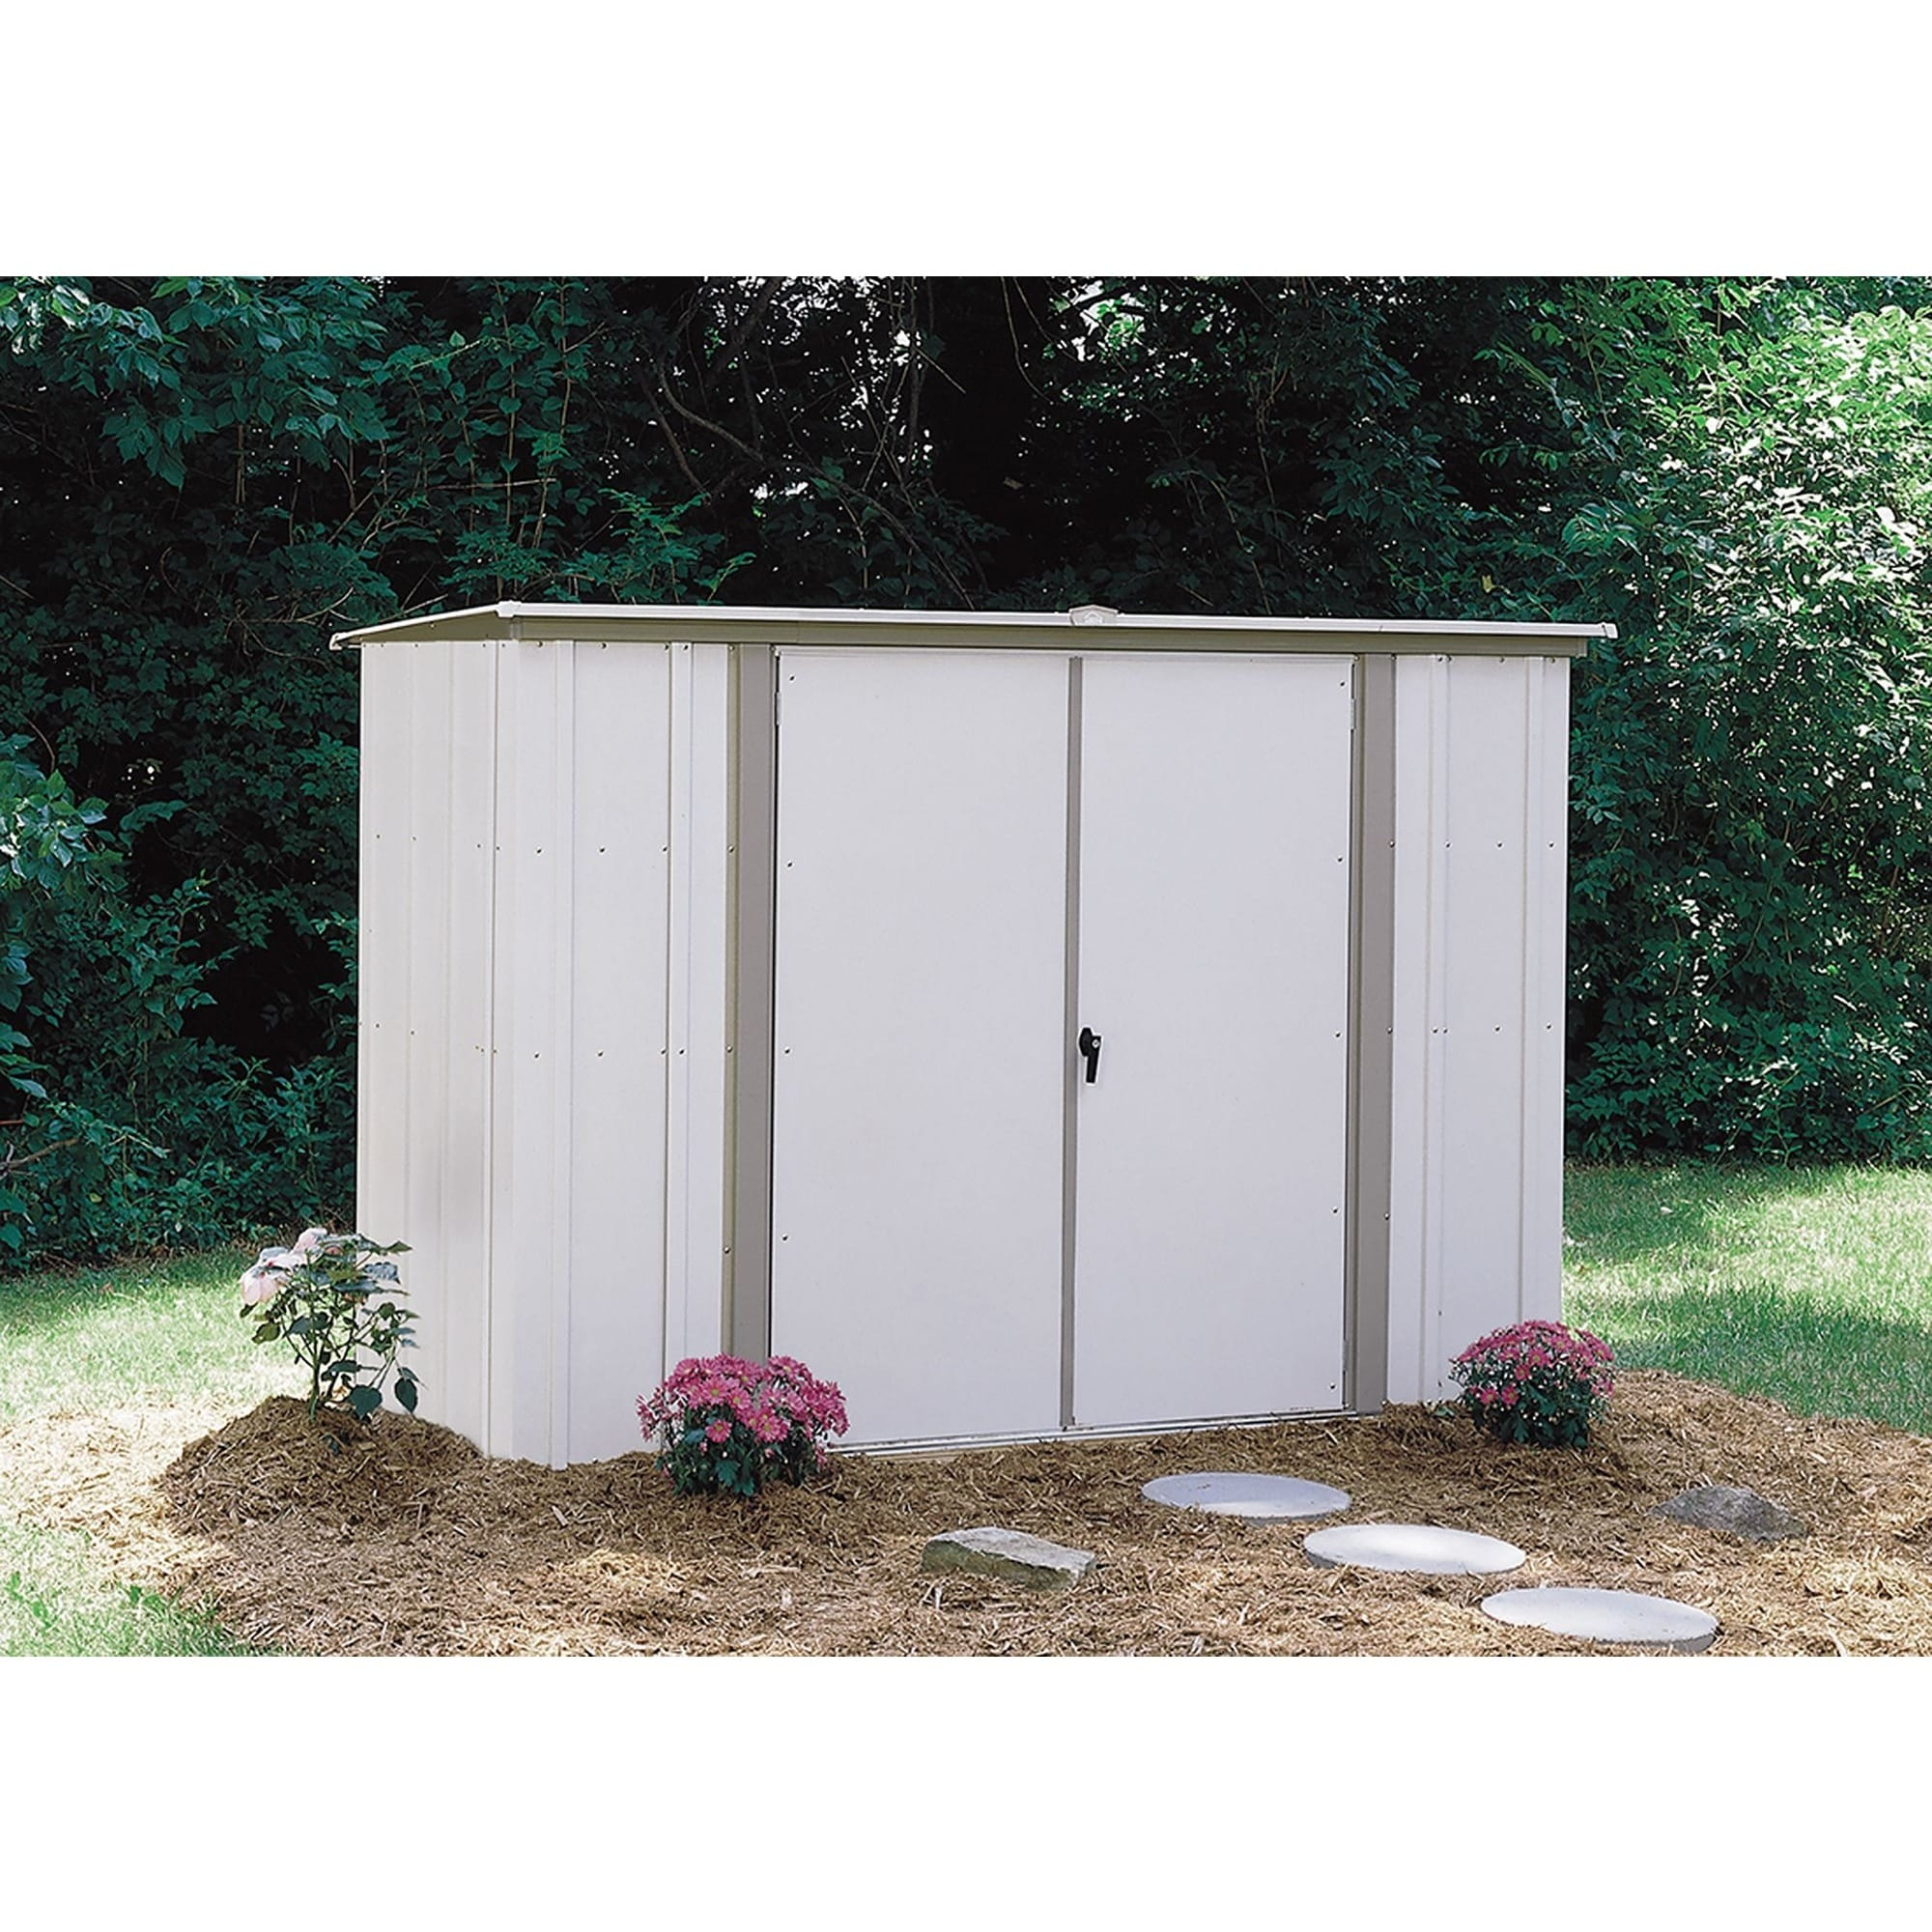 fl pa buy portable pennsylvania panama lancaster storage l city a buildings classic woodenage in atlas shed sheds